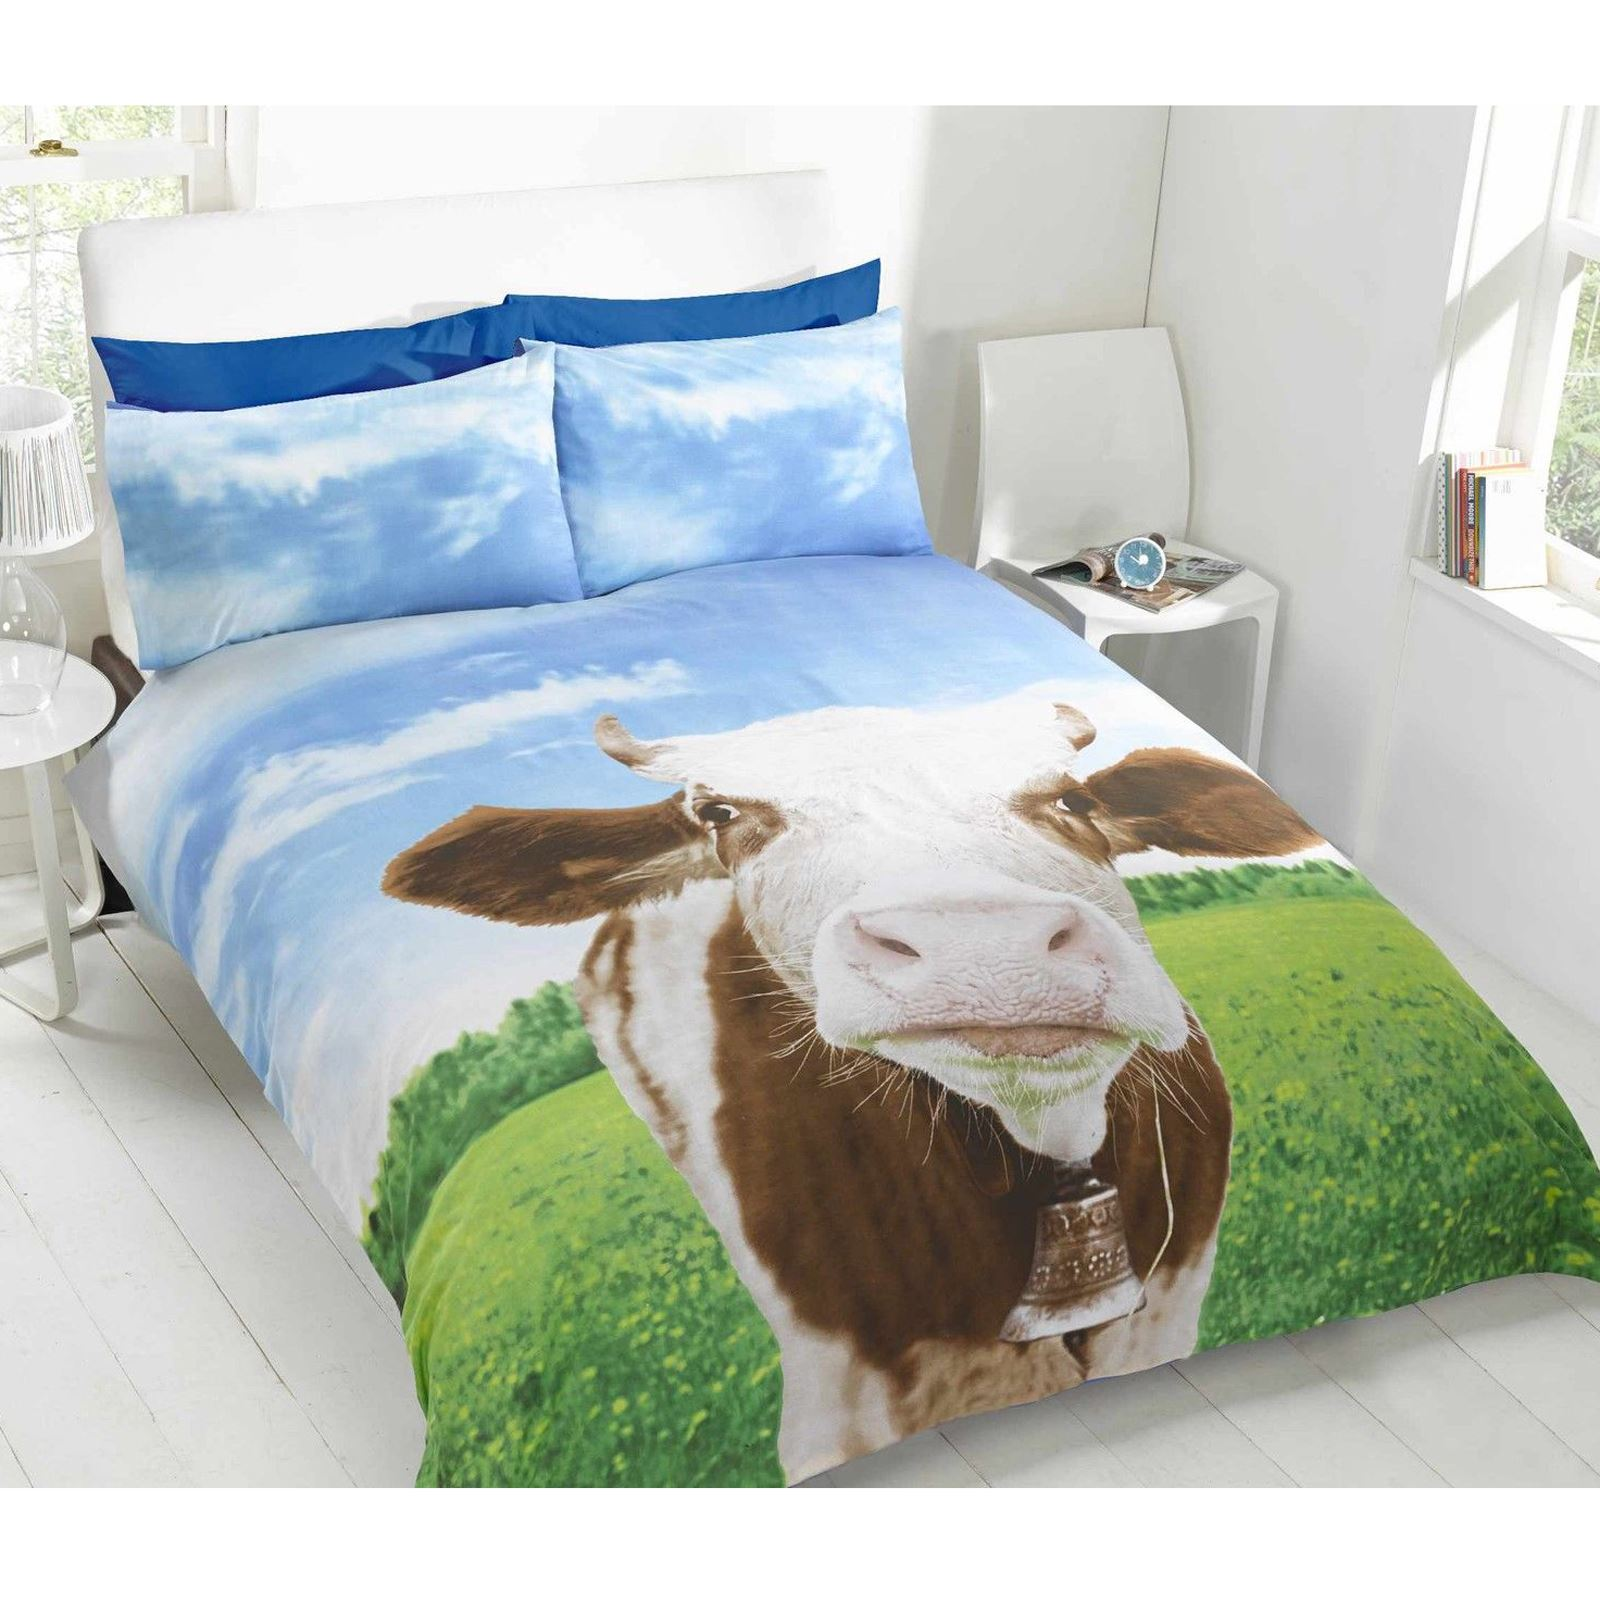 daisy cow single duvet cover set new bedding ebay. Black Bedroom Furniture Sets. Home Design Ideas